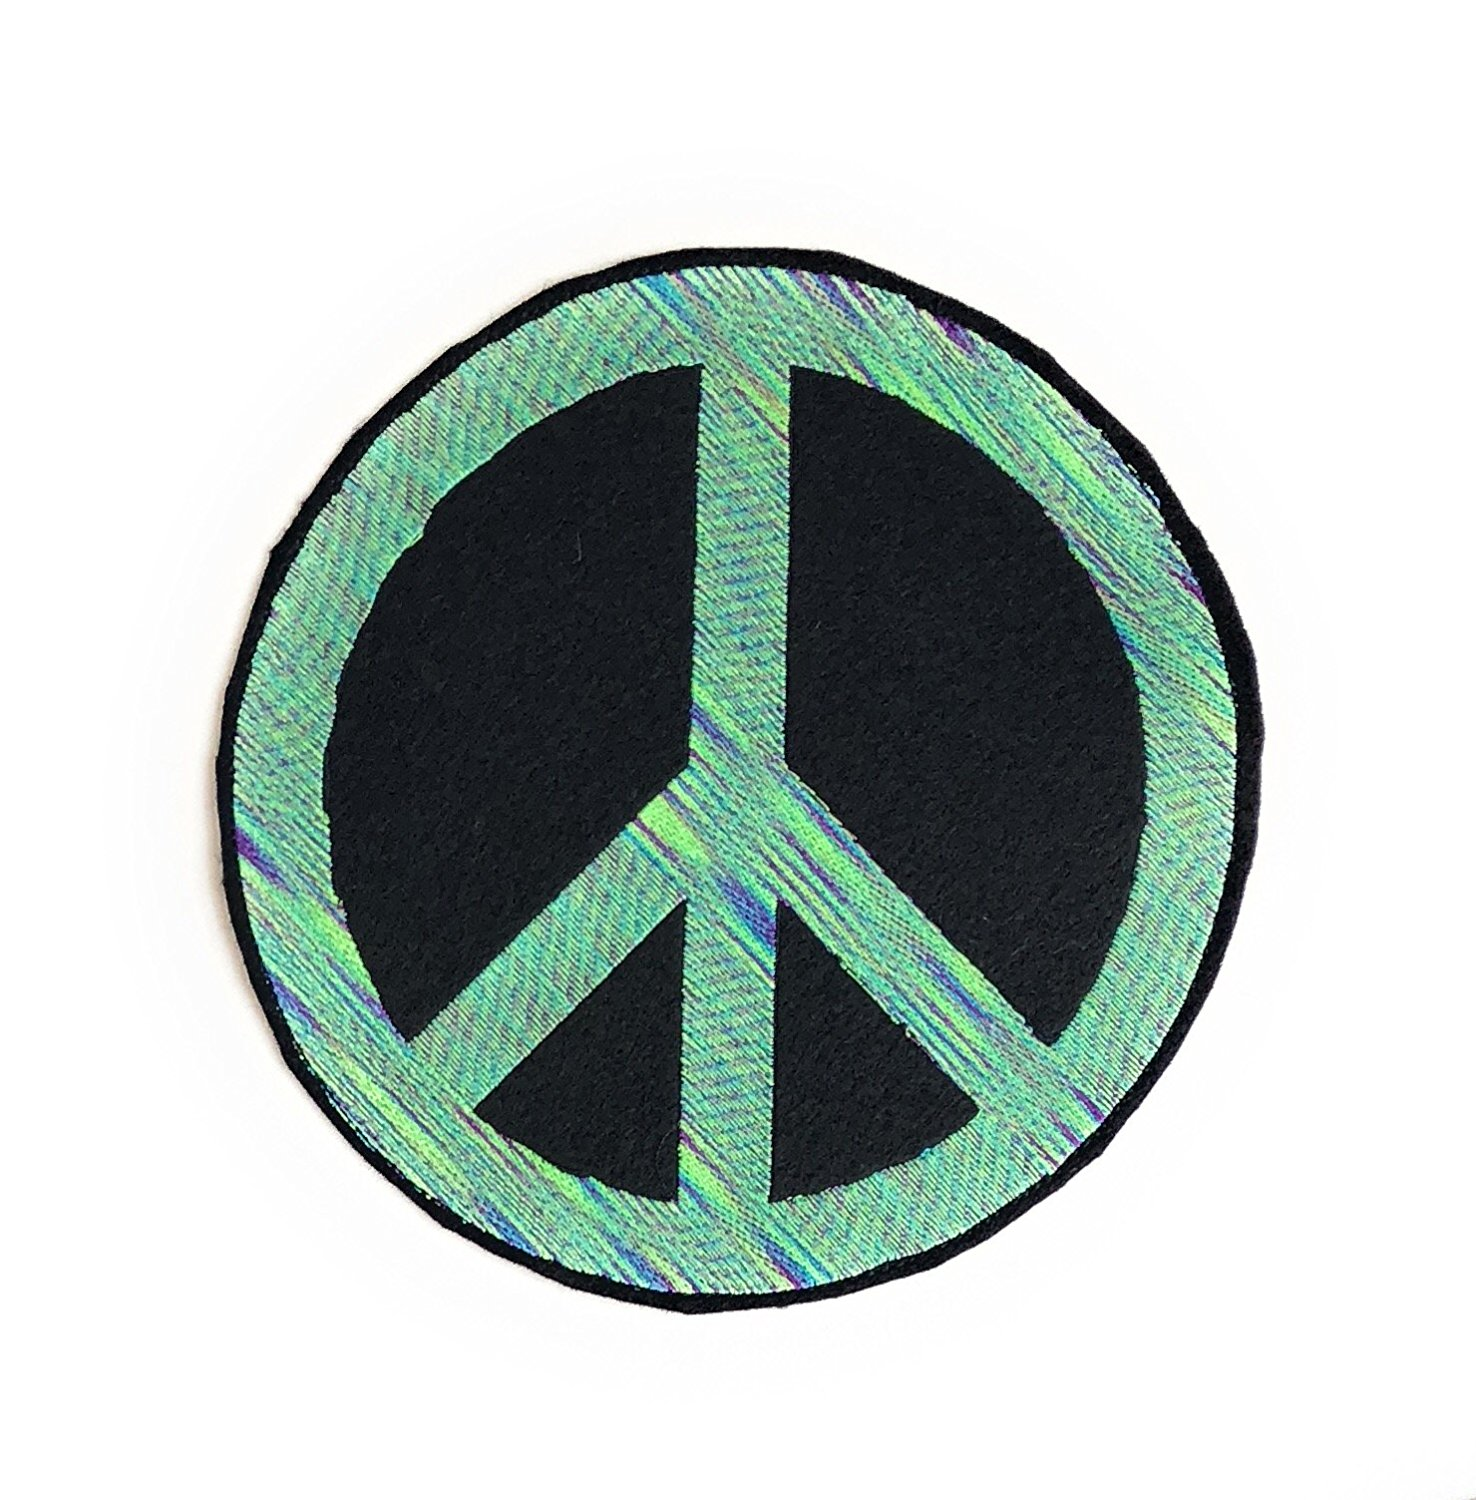 Large Peace Sign Patch, Peace Symbol Patch, Peace Sign Sew on Patch, Large Patch 7.5 inches in Variegated Green, Made in USA